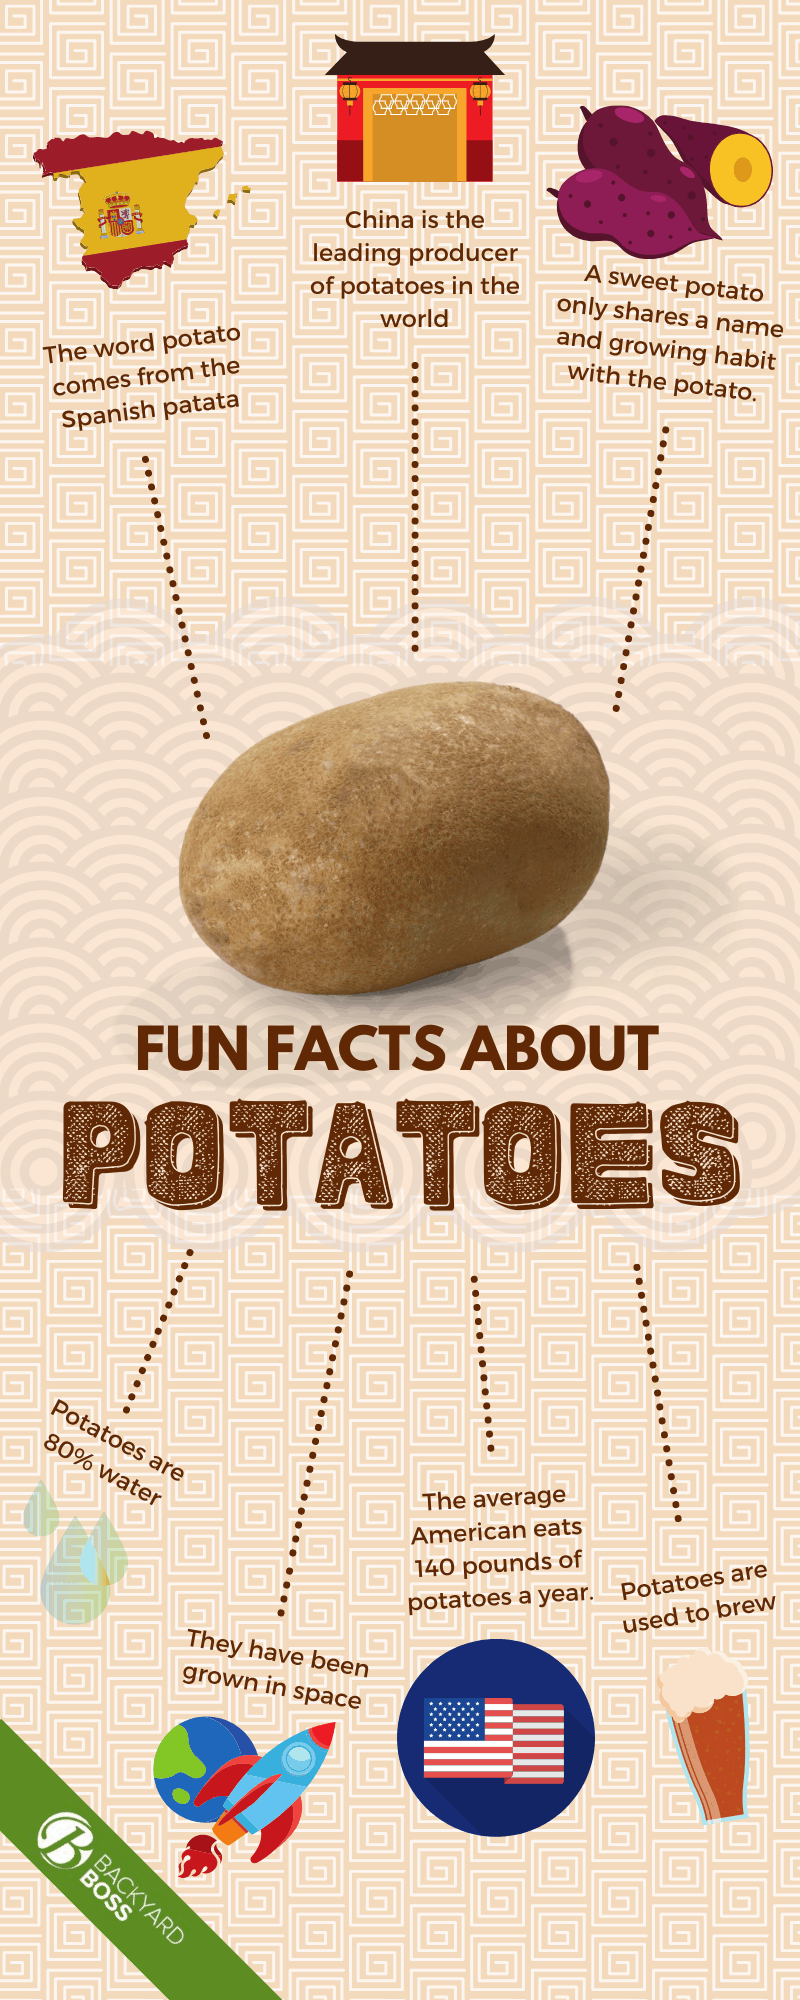 Fun Facts About Potatoes - Infographic